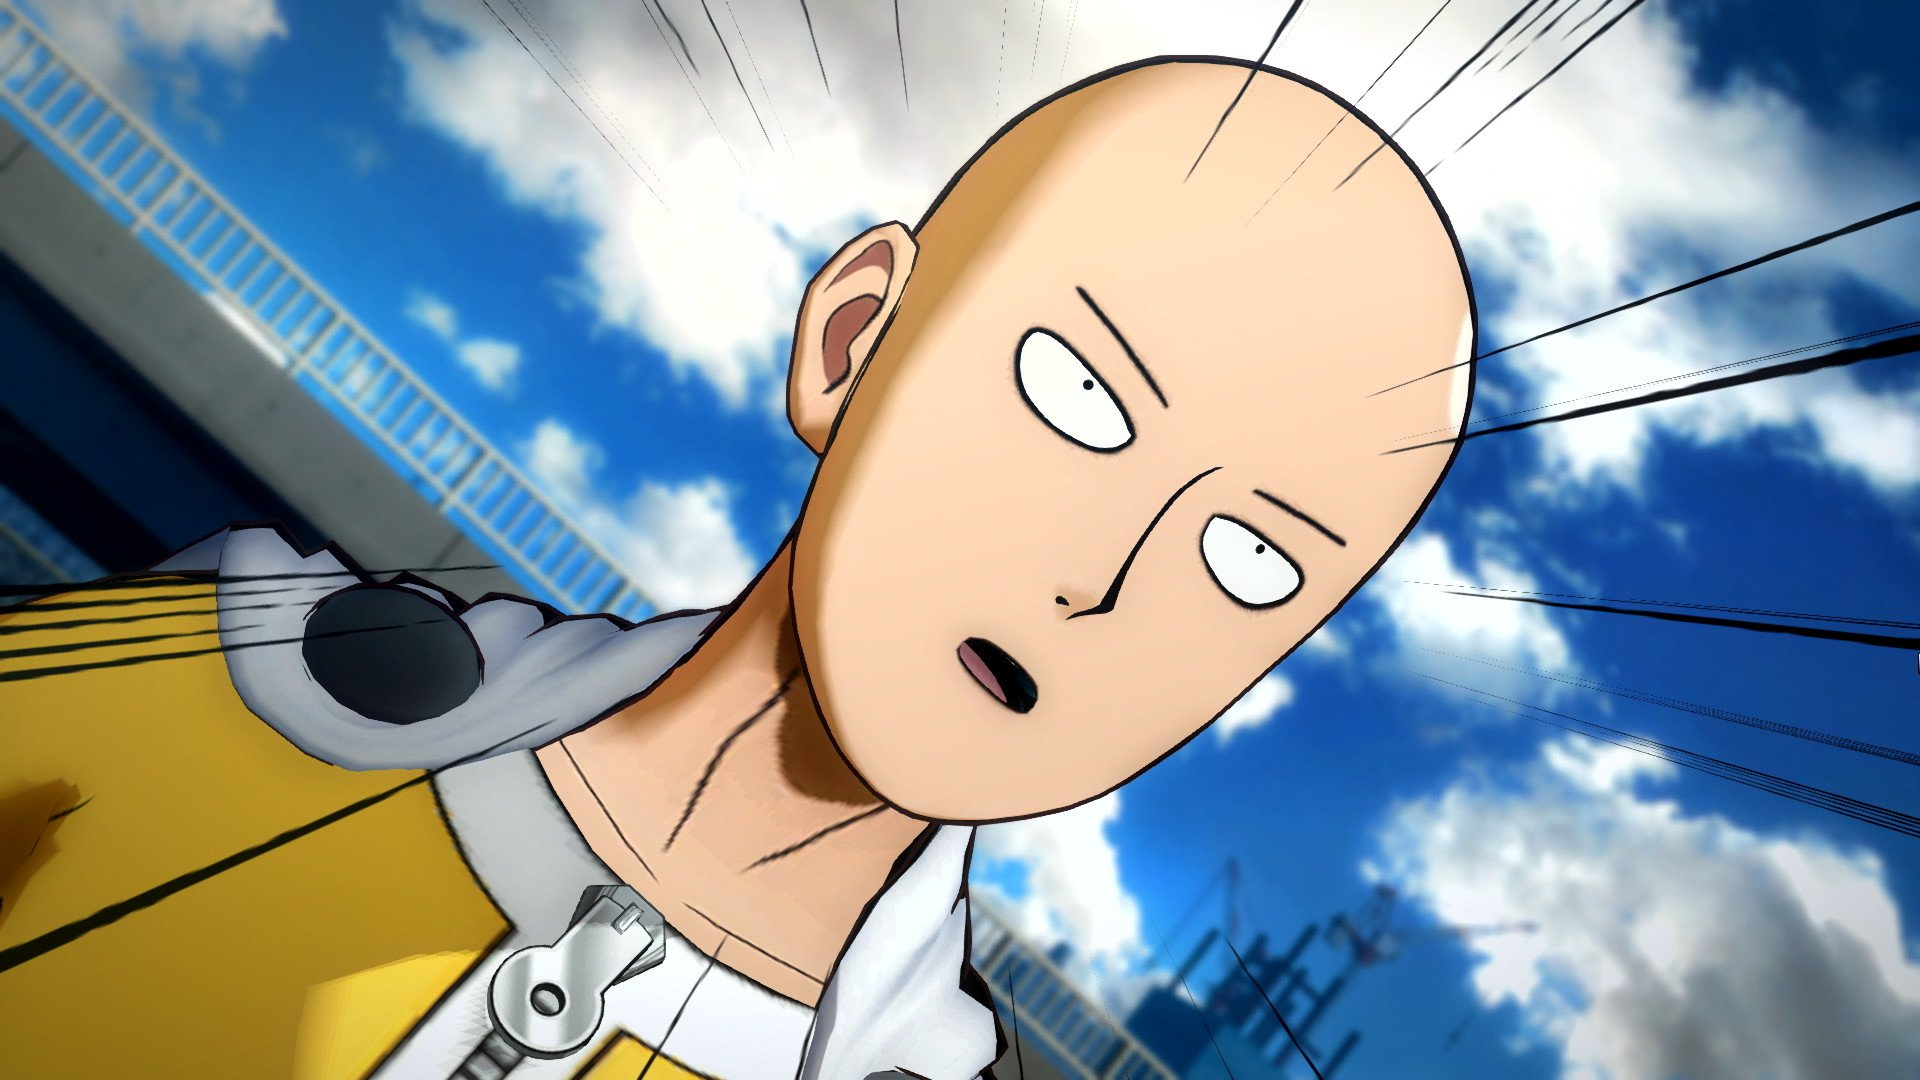 One Punch Man Season 2 Reveals New Character Designs And Preview - Otakukart News